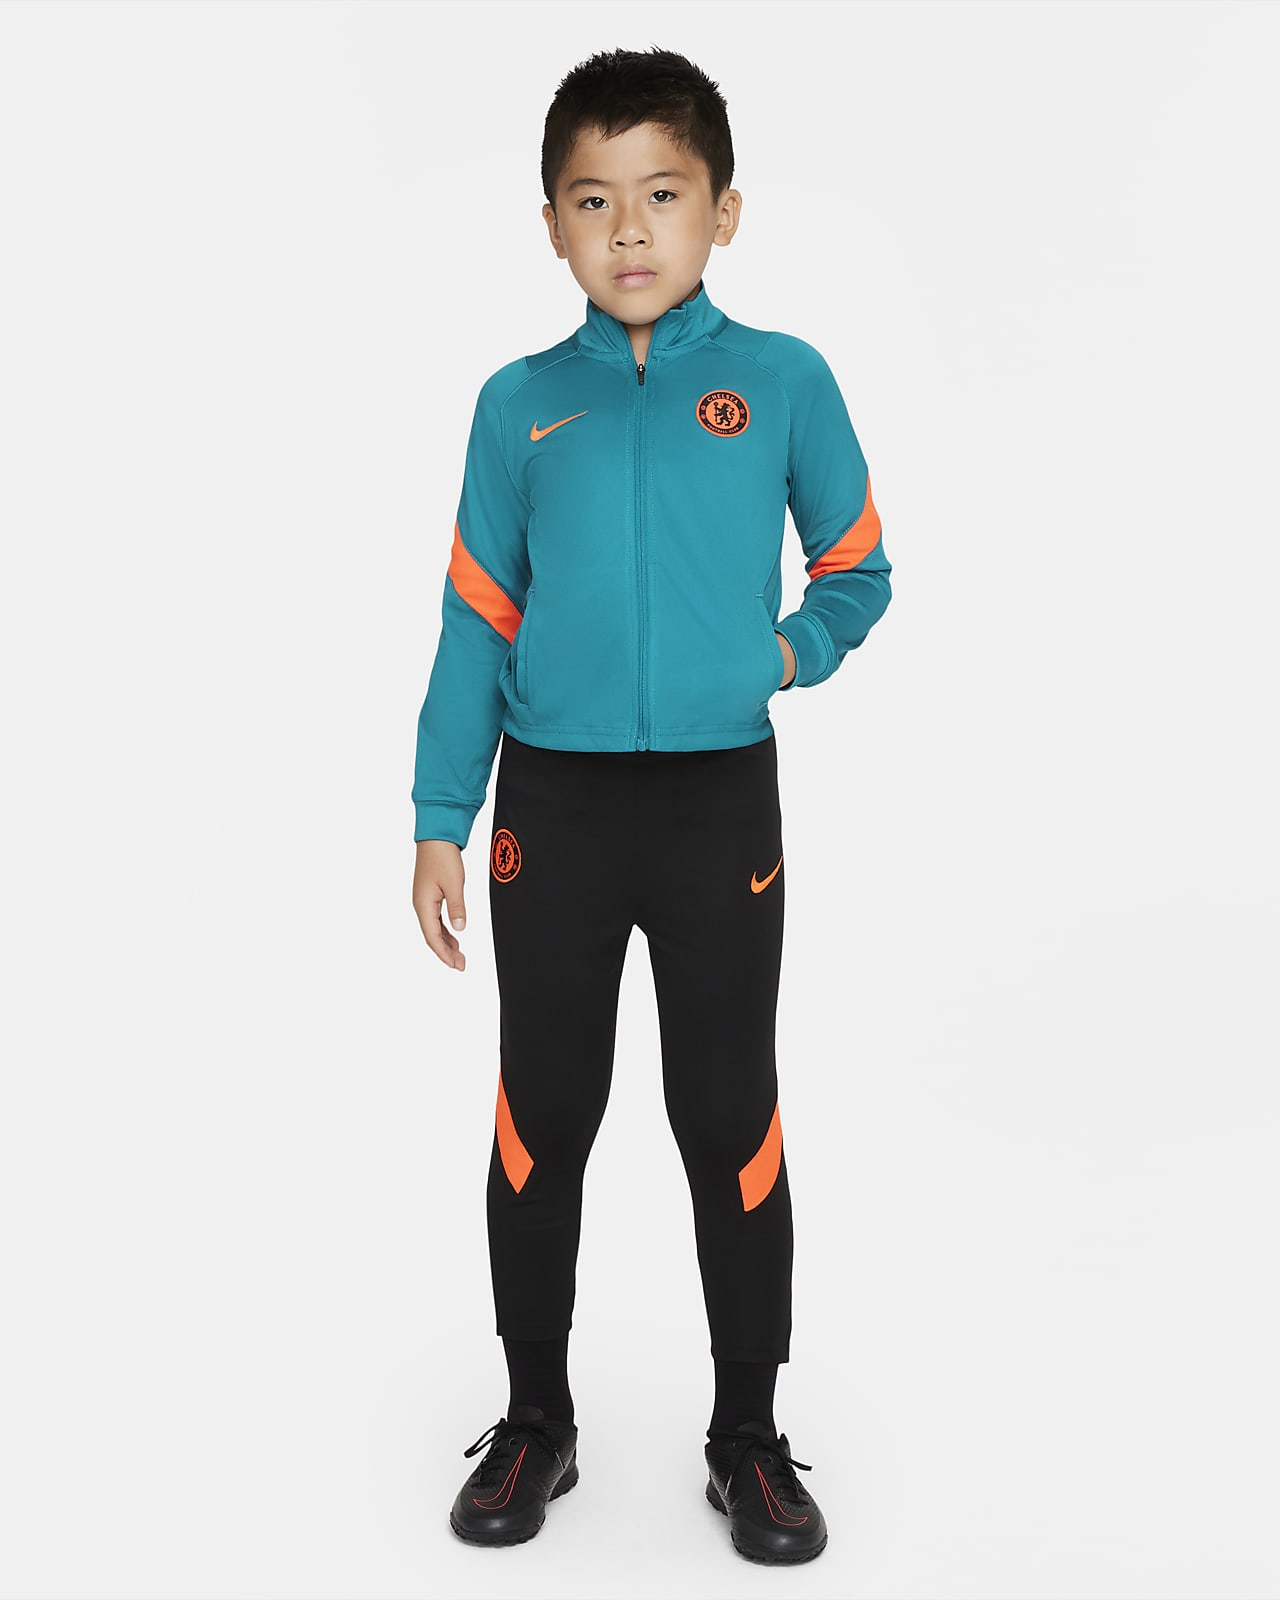 Chelsea F.C. Strike Younger Kids' Nike Dri-FIT Knit Football Tracksuit